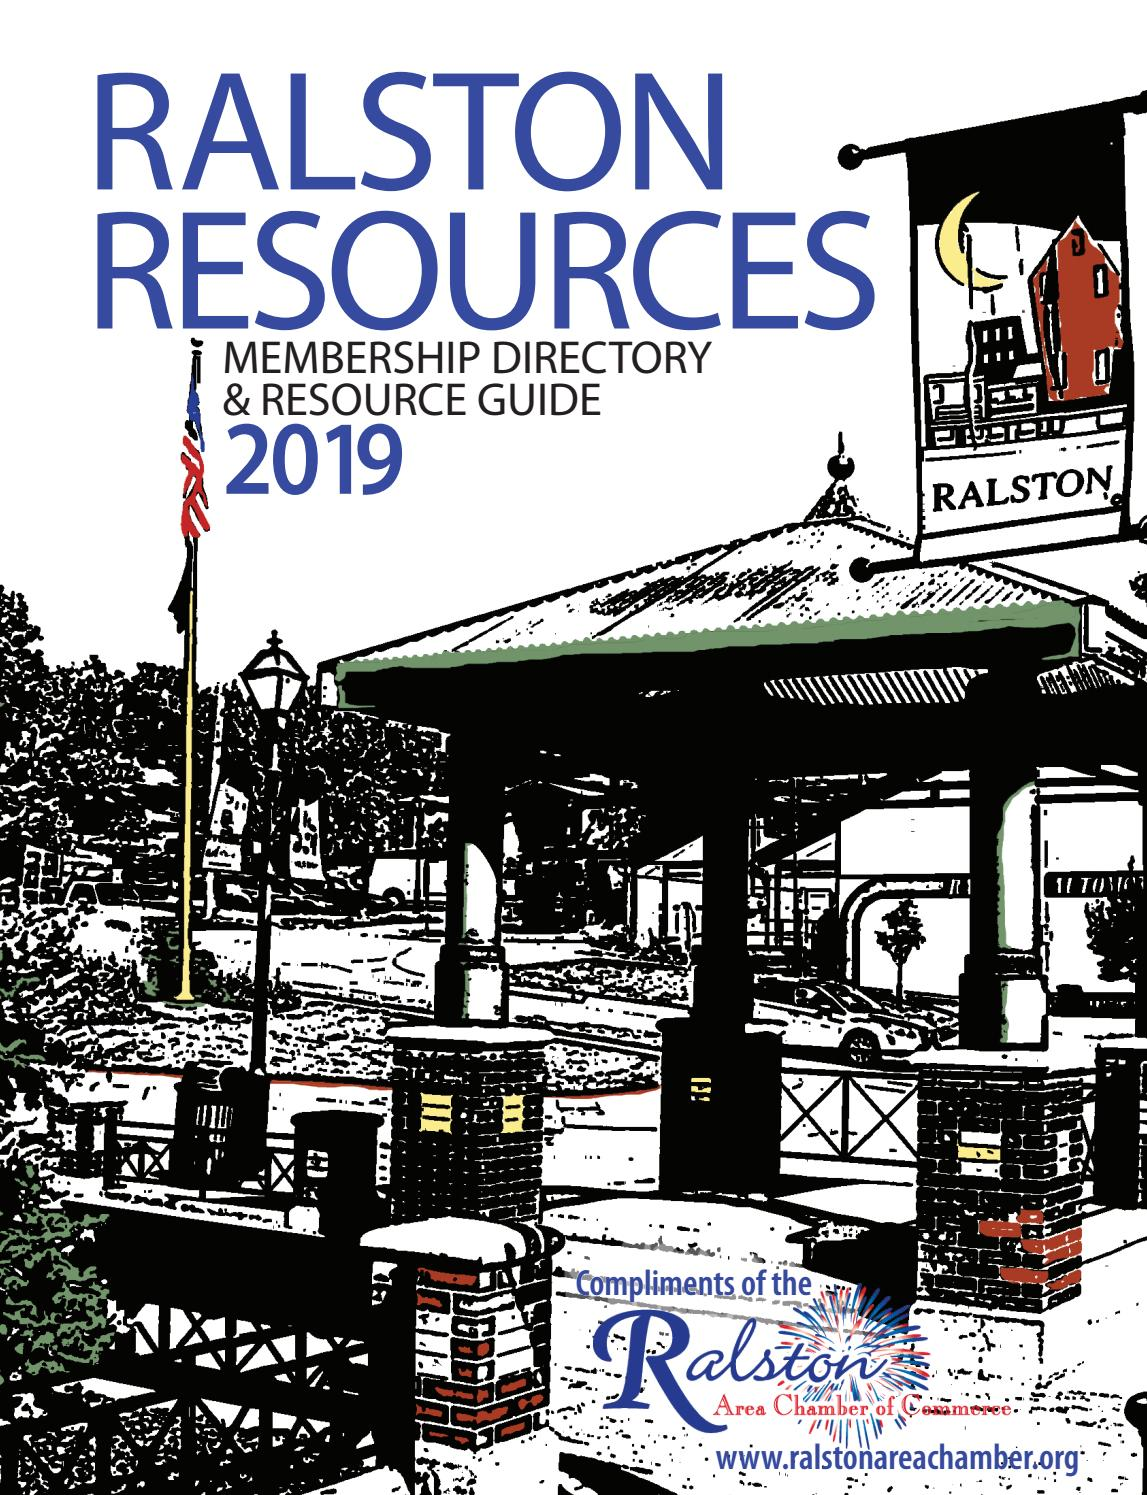 Ralston Resources 2019 By Suburban Newspapers Issuu